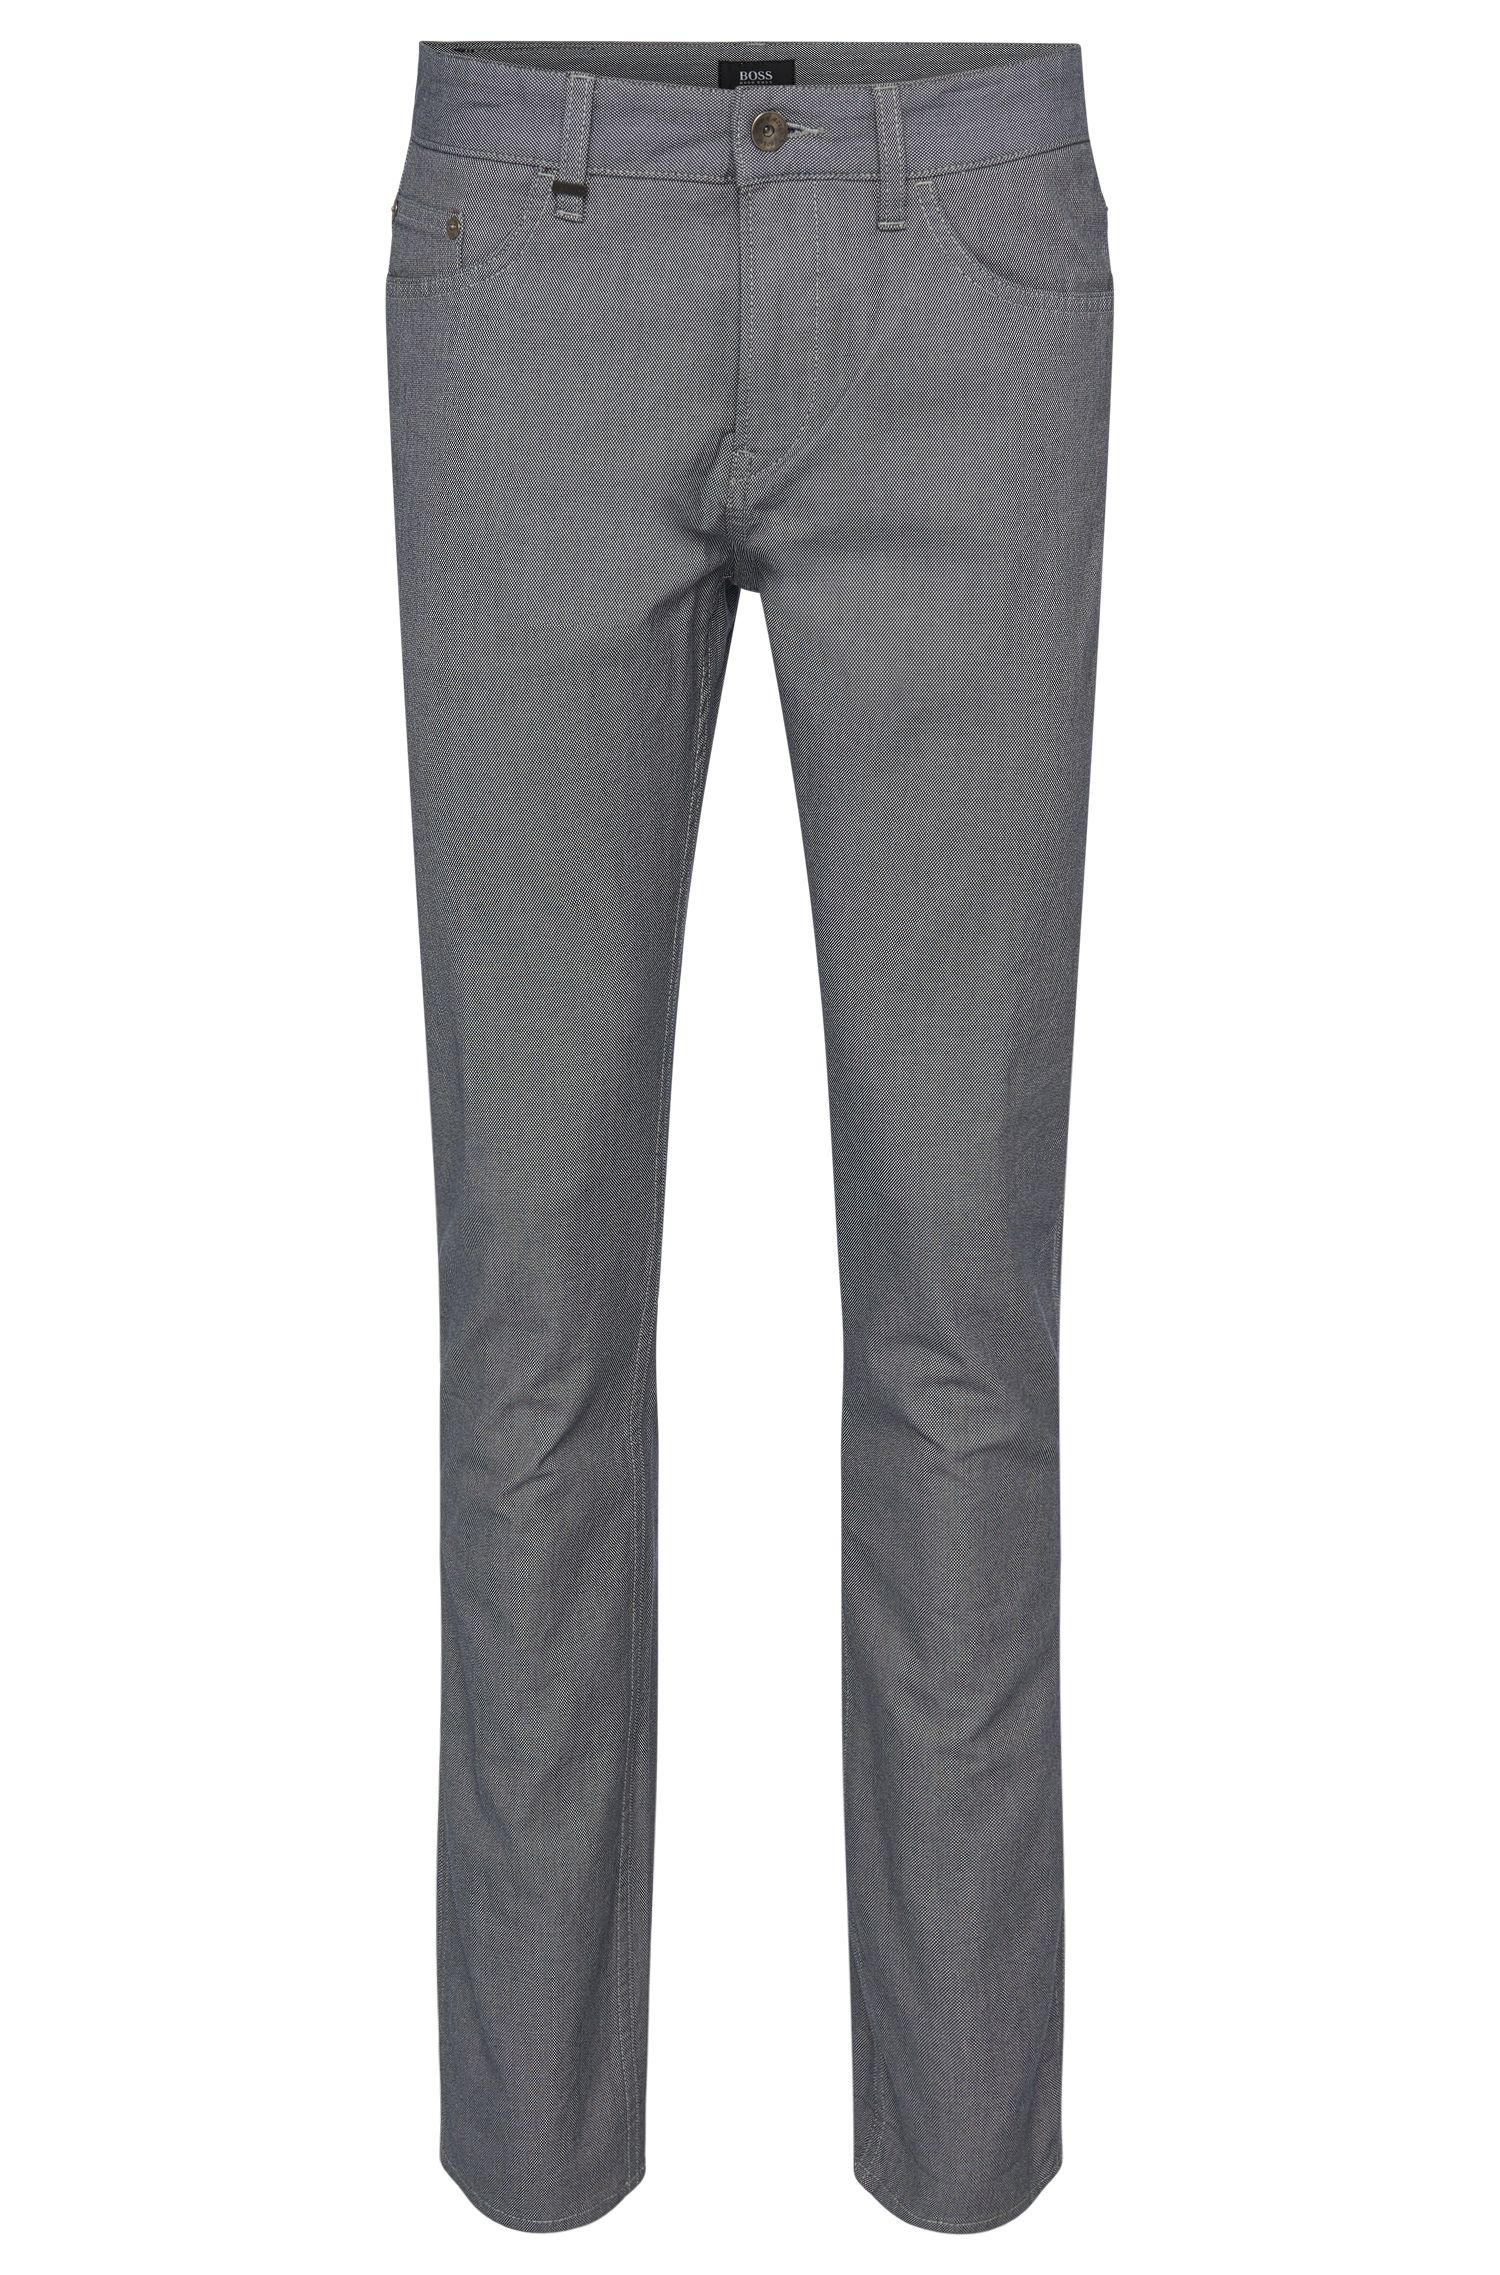 'Delaware' | Slim Fit, 8 oz Stretch Cotton Contrast Trousers